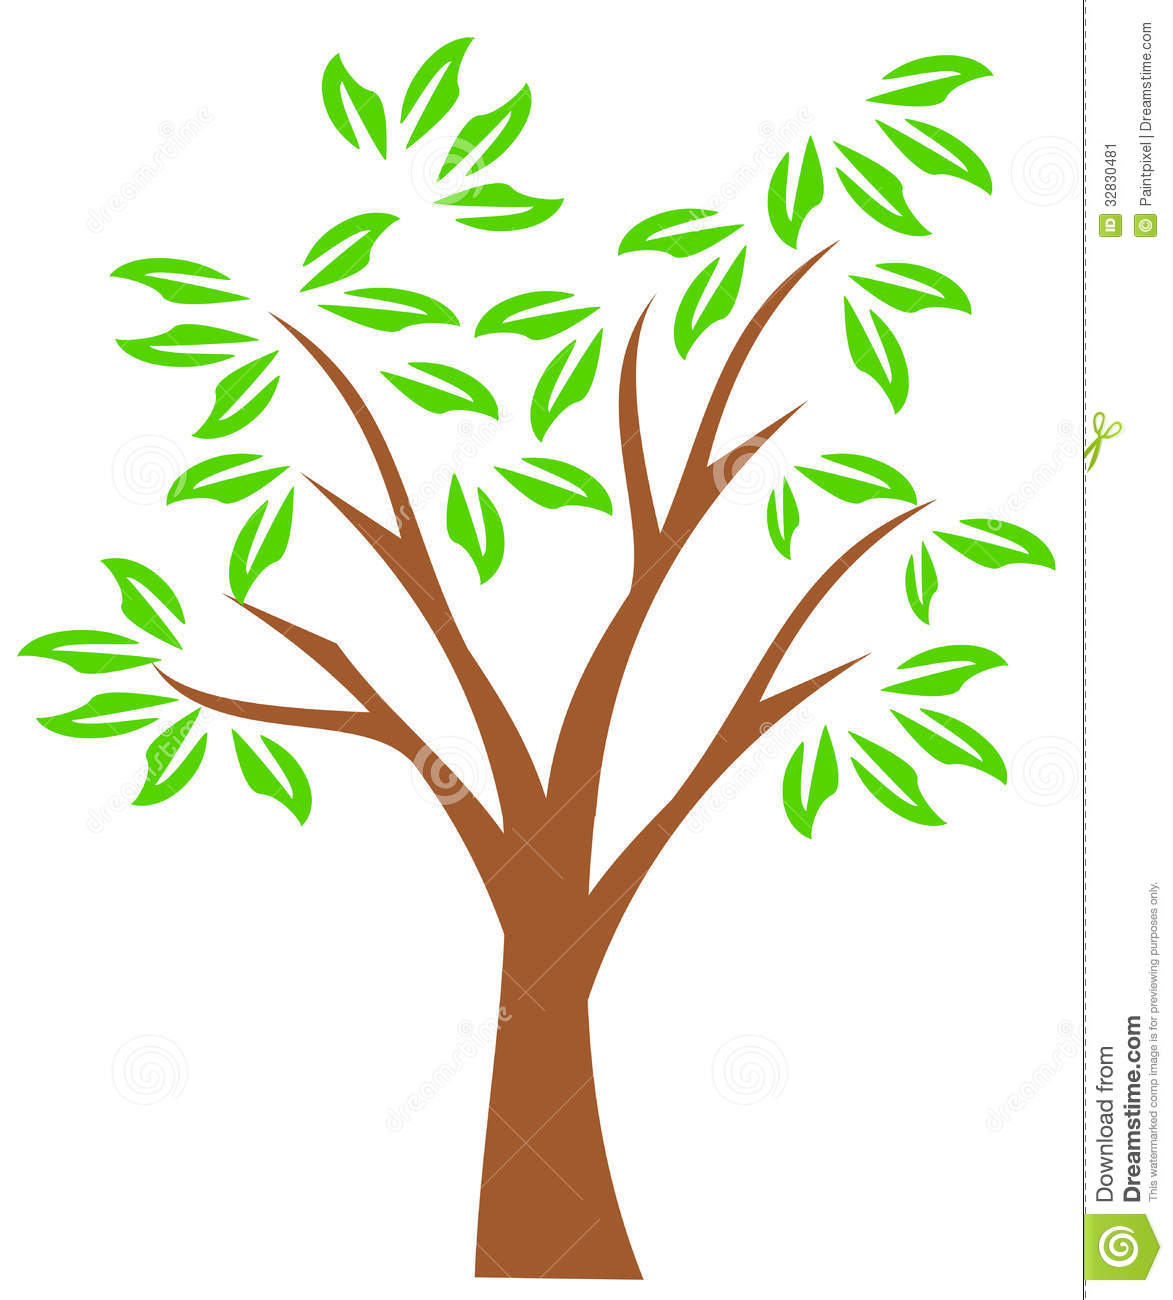 Tree Without Clipart - Clipart Suggest